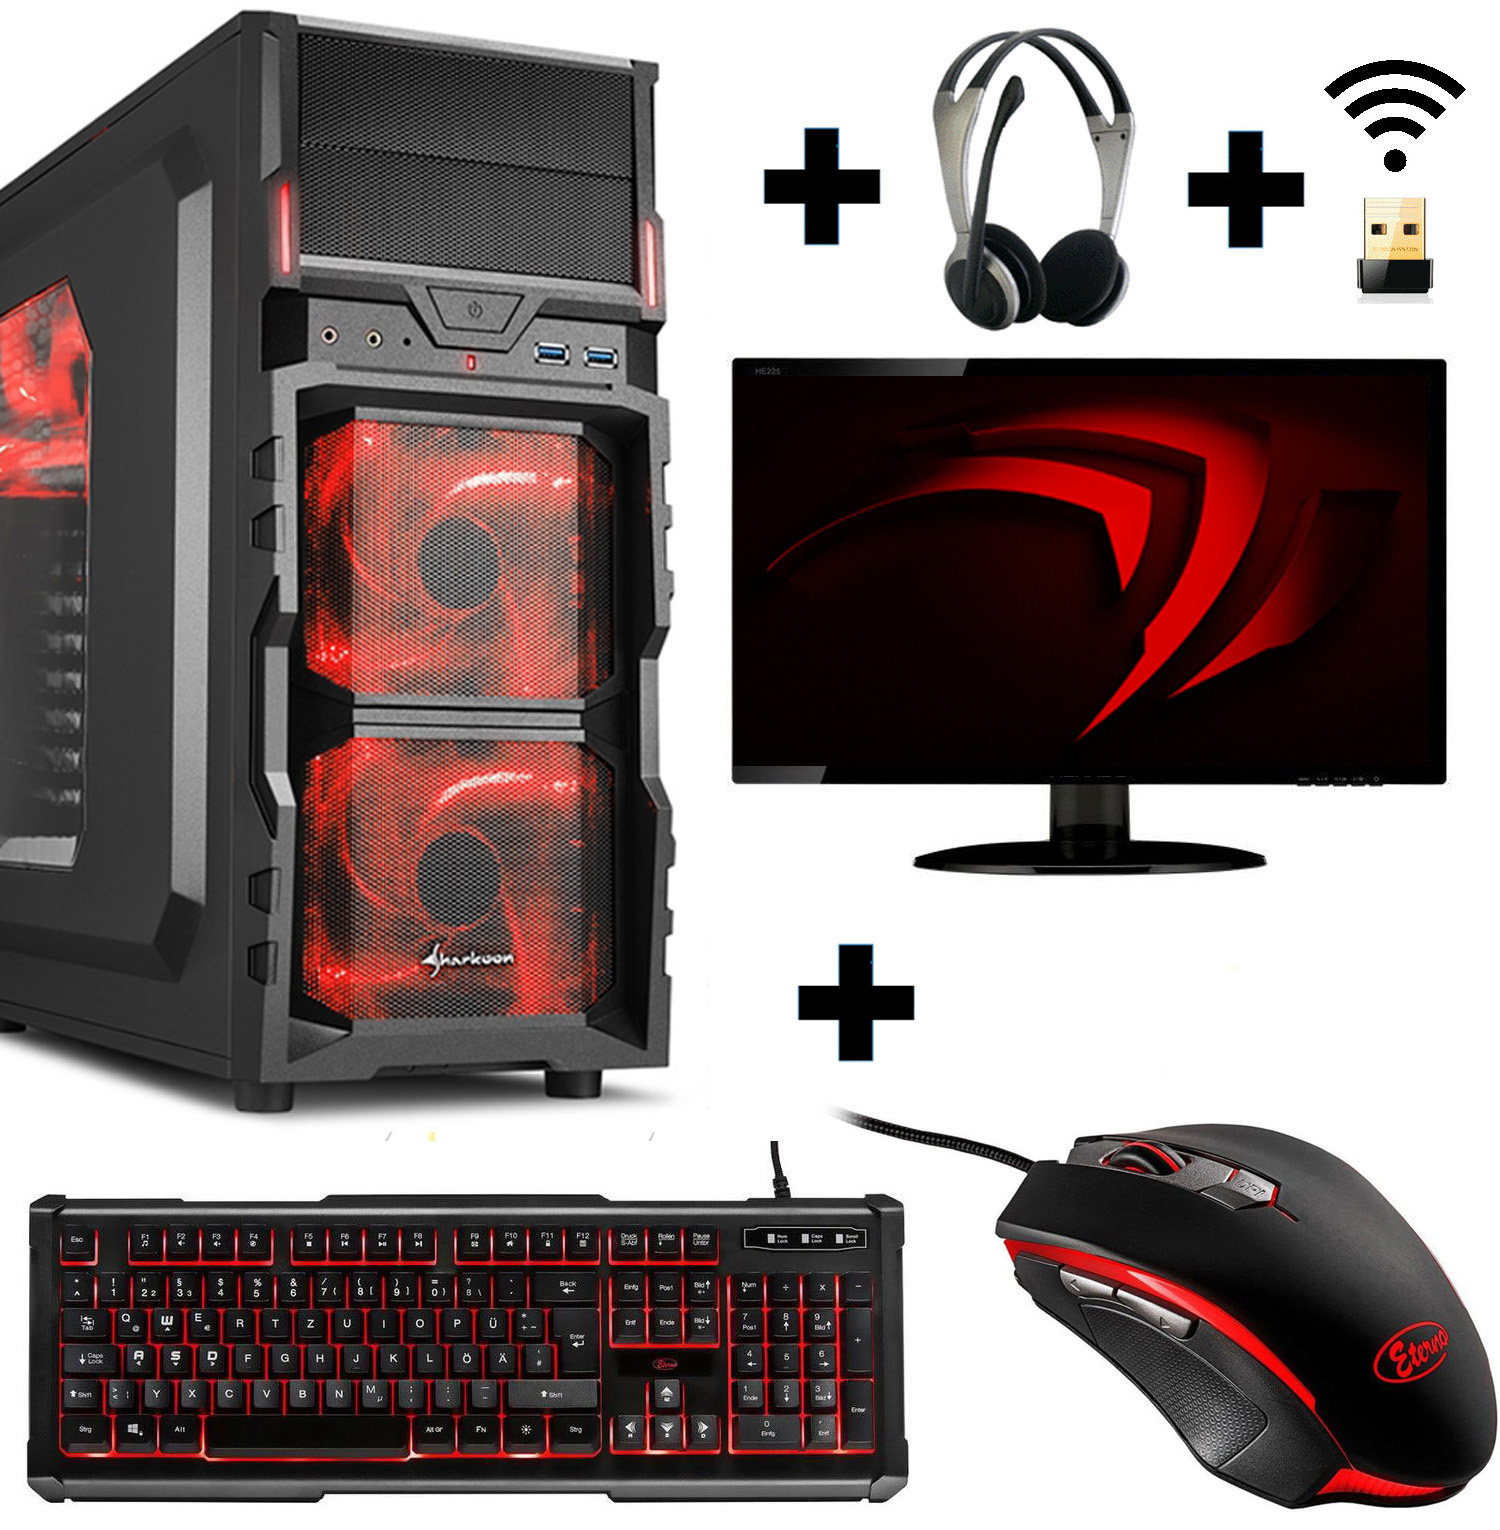 Gamer PC Komplett-Set A10 9700 4x 3,8 Ghz Radeon R7 8GB 1TB Gaming Win10 65 Watt